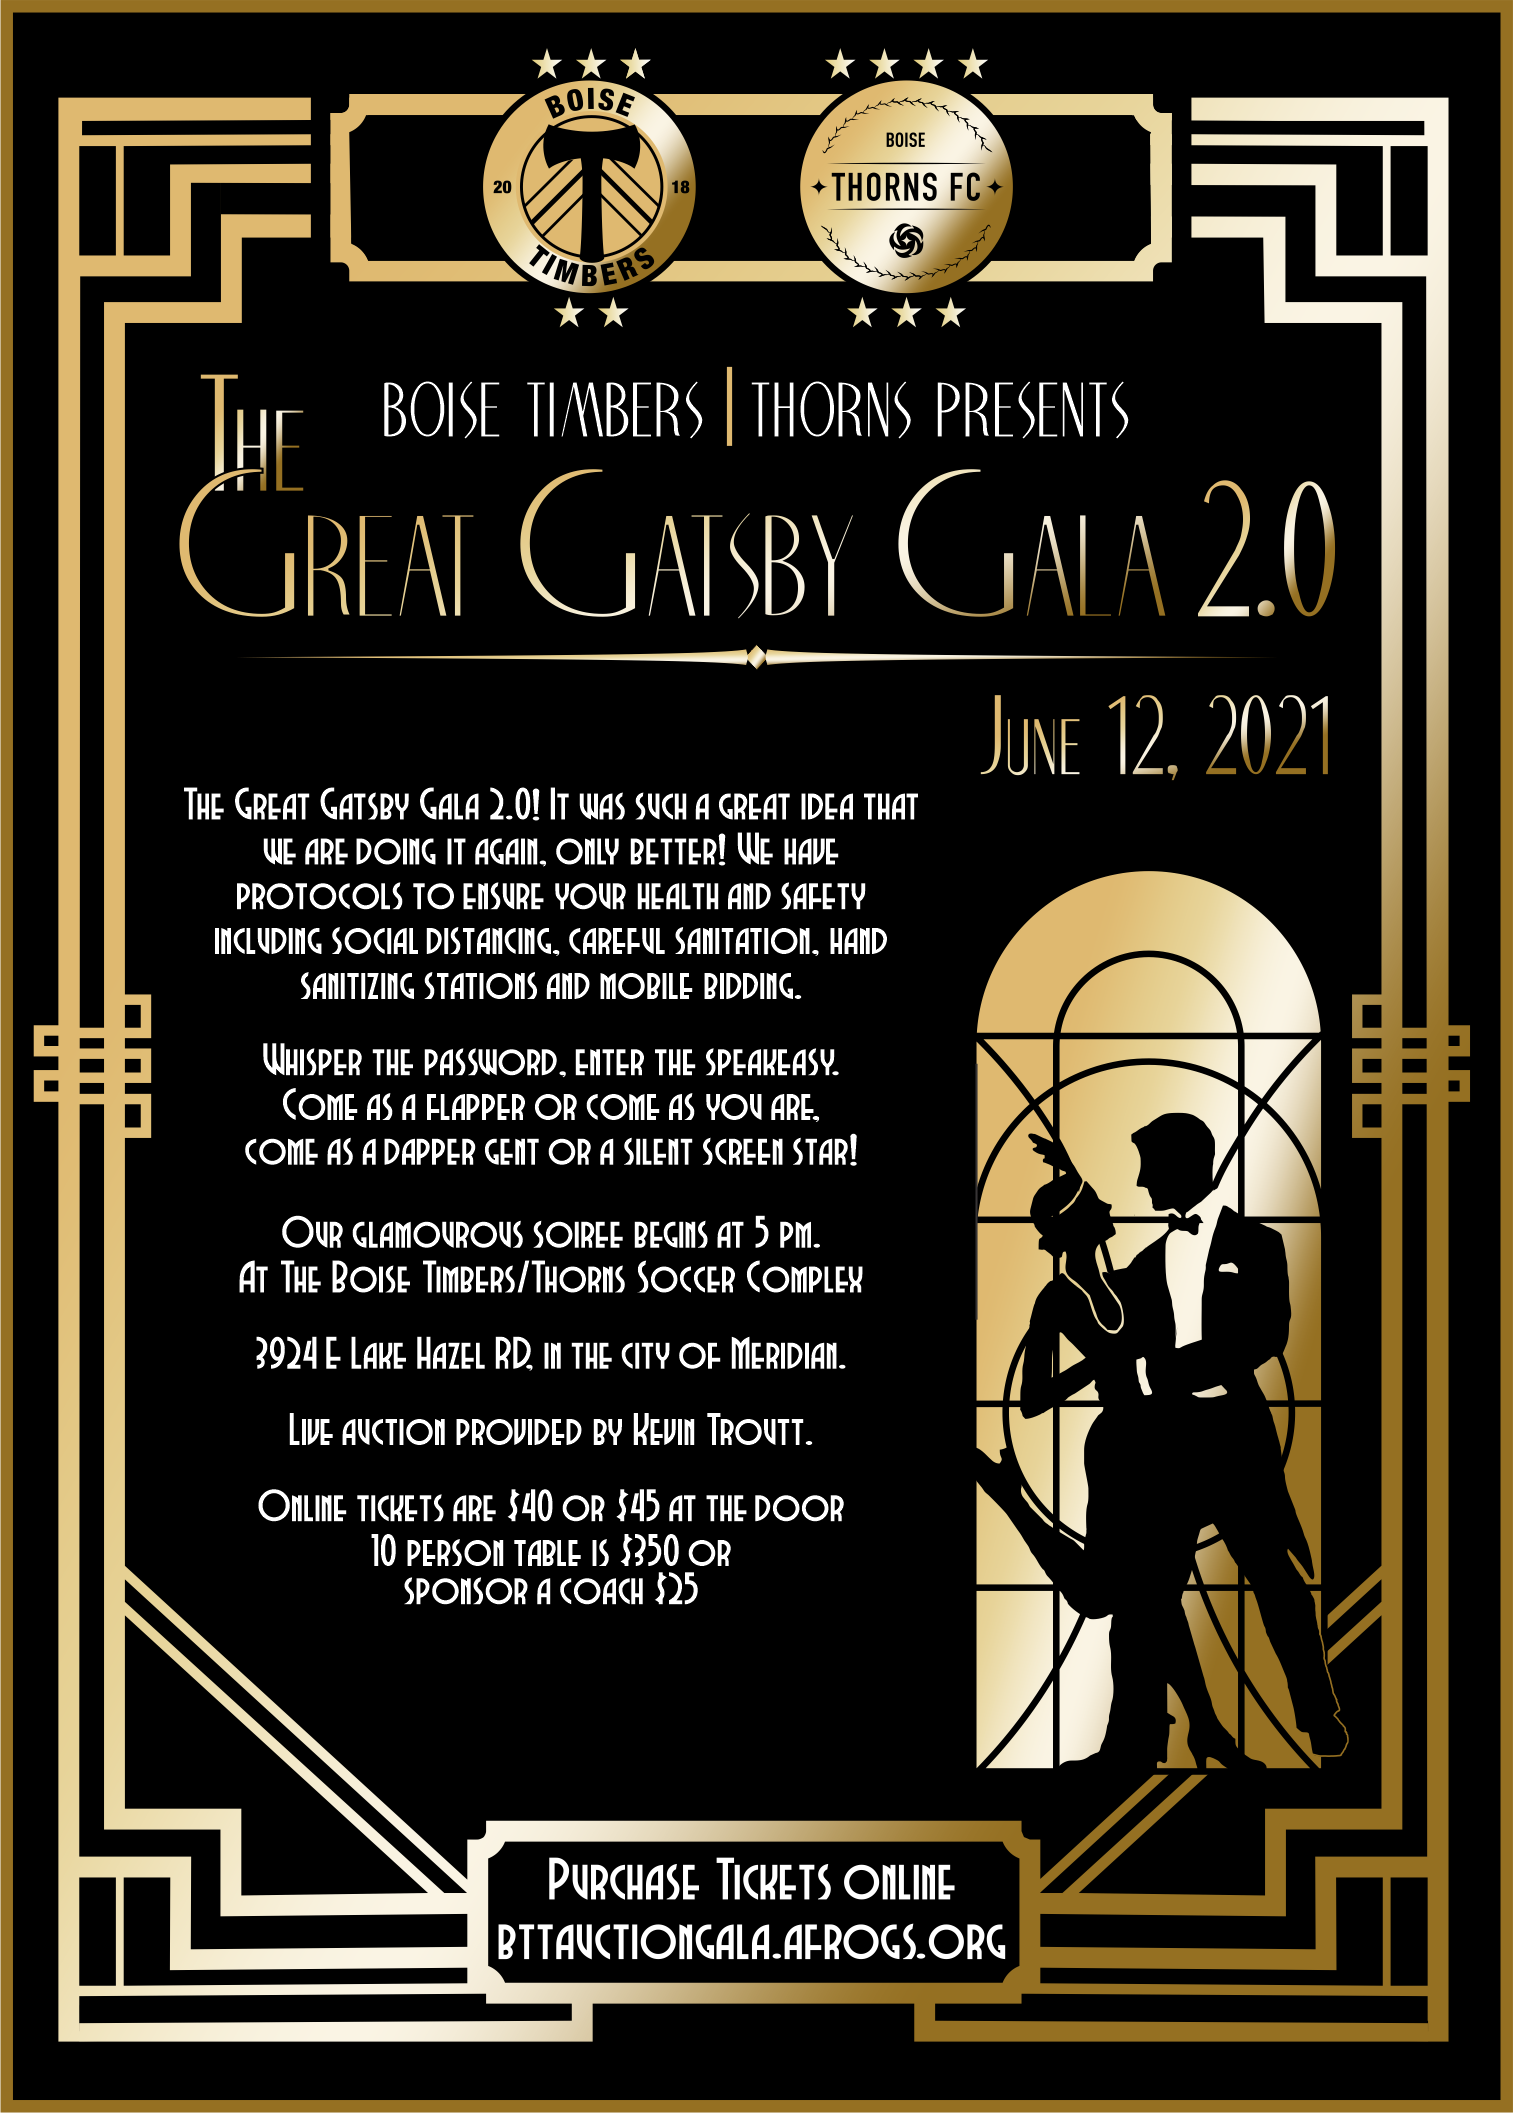 The Great Gatsby Auction Gala 2.0